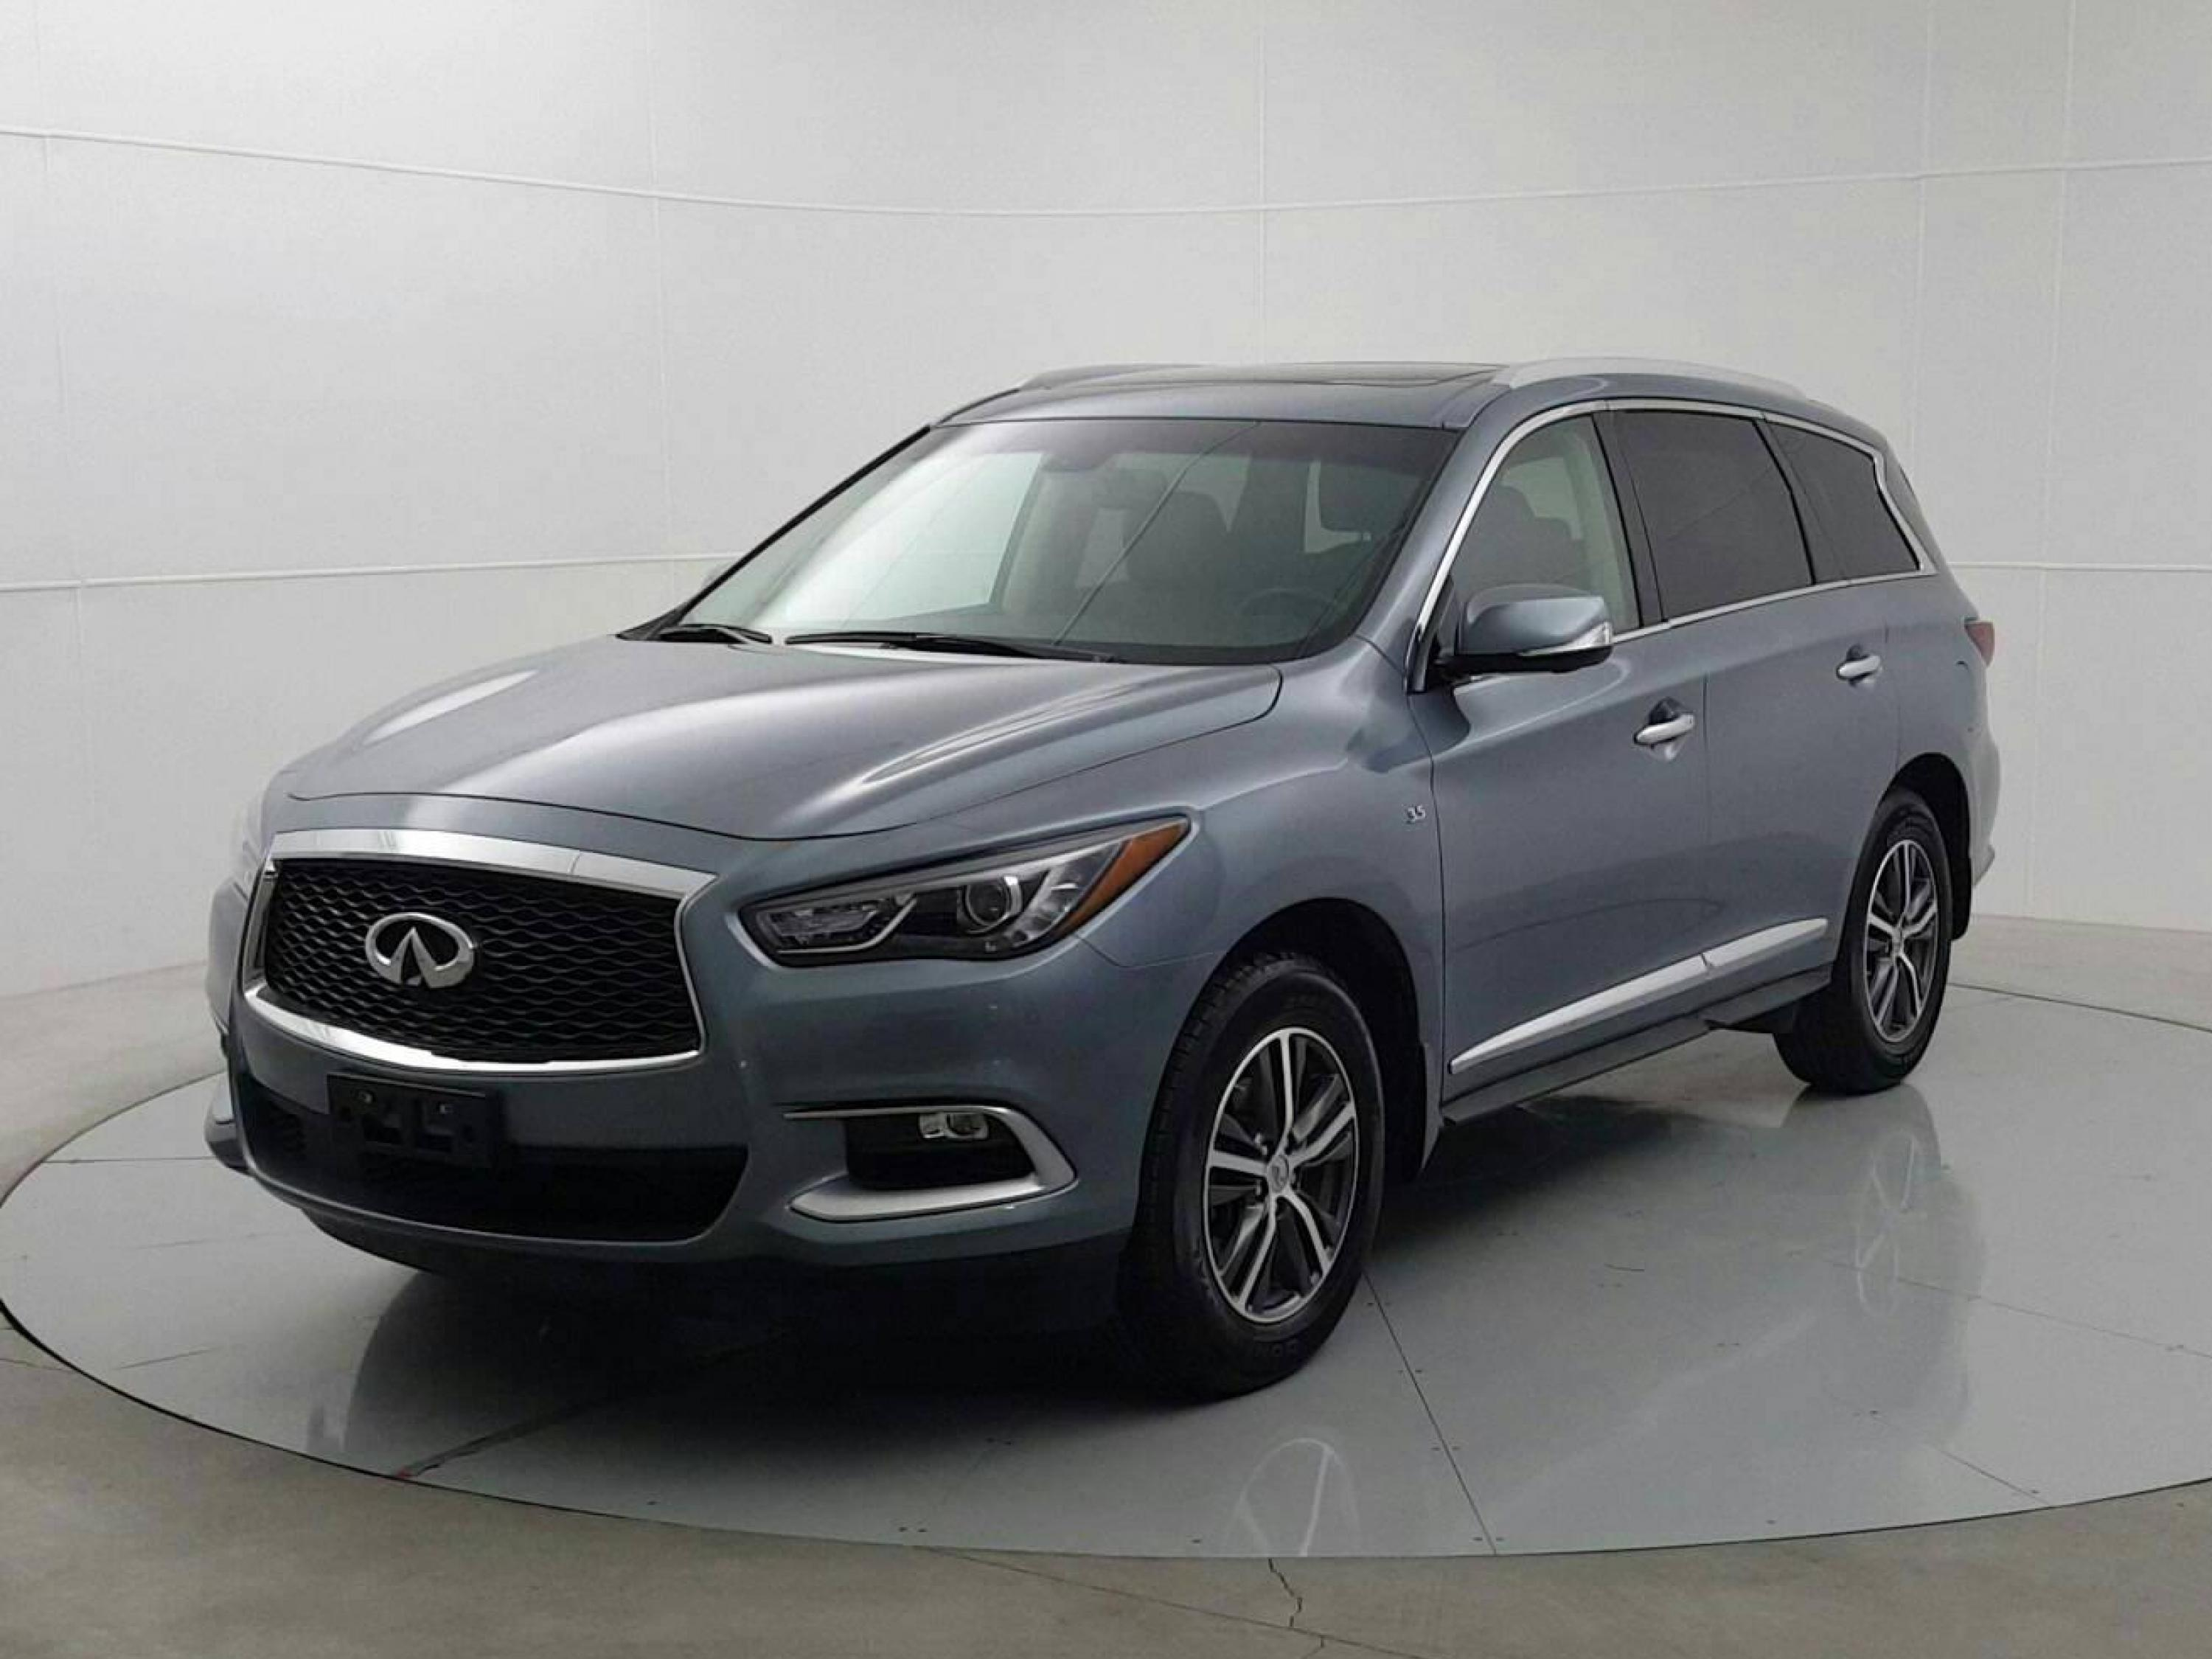 Pre-Owned 2016 INFINITI QX60 Base *Local One Owner and Low Km*